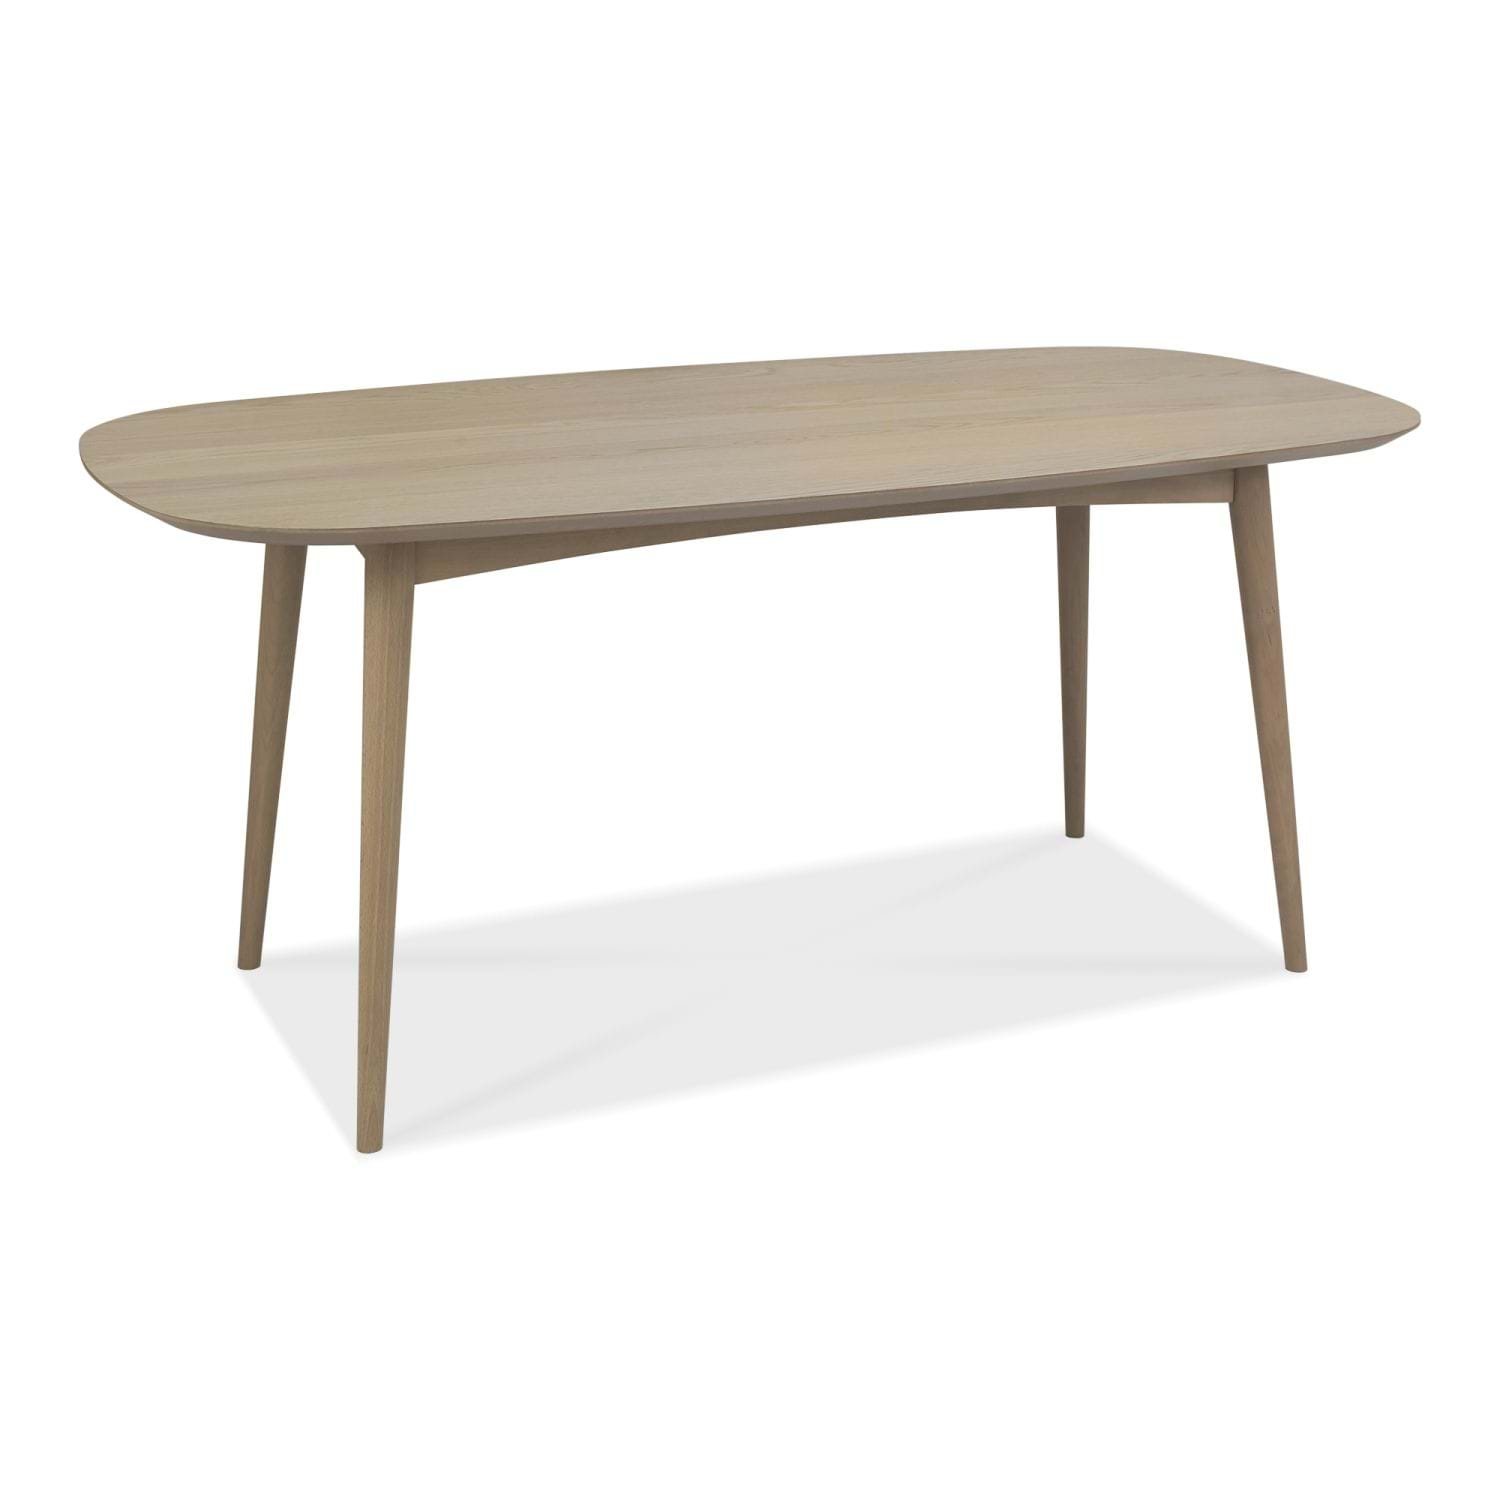 Image of Casa Ottawa 6 Seater Dining Table